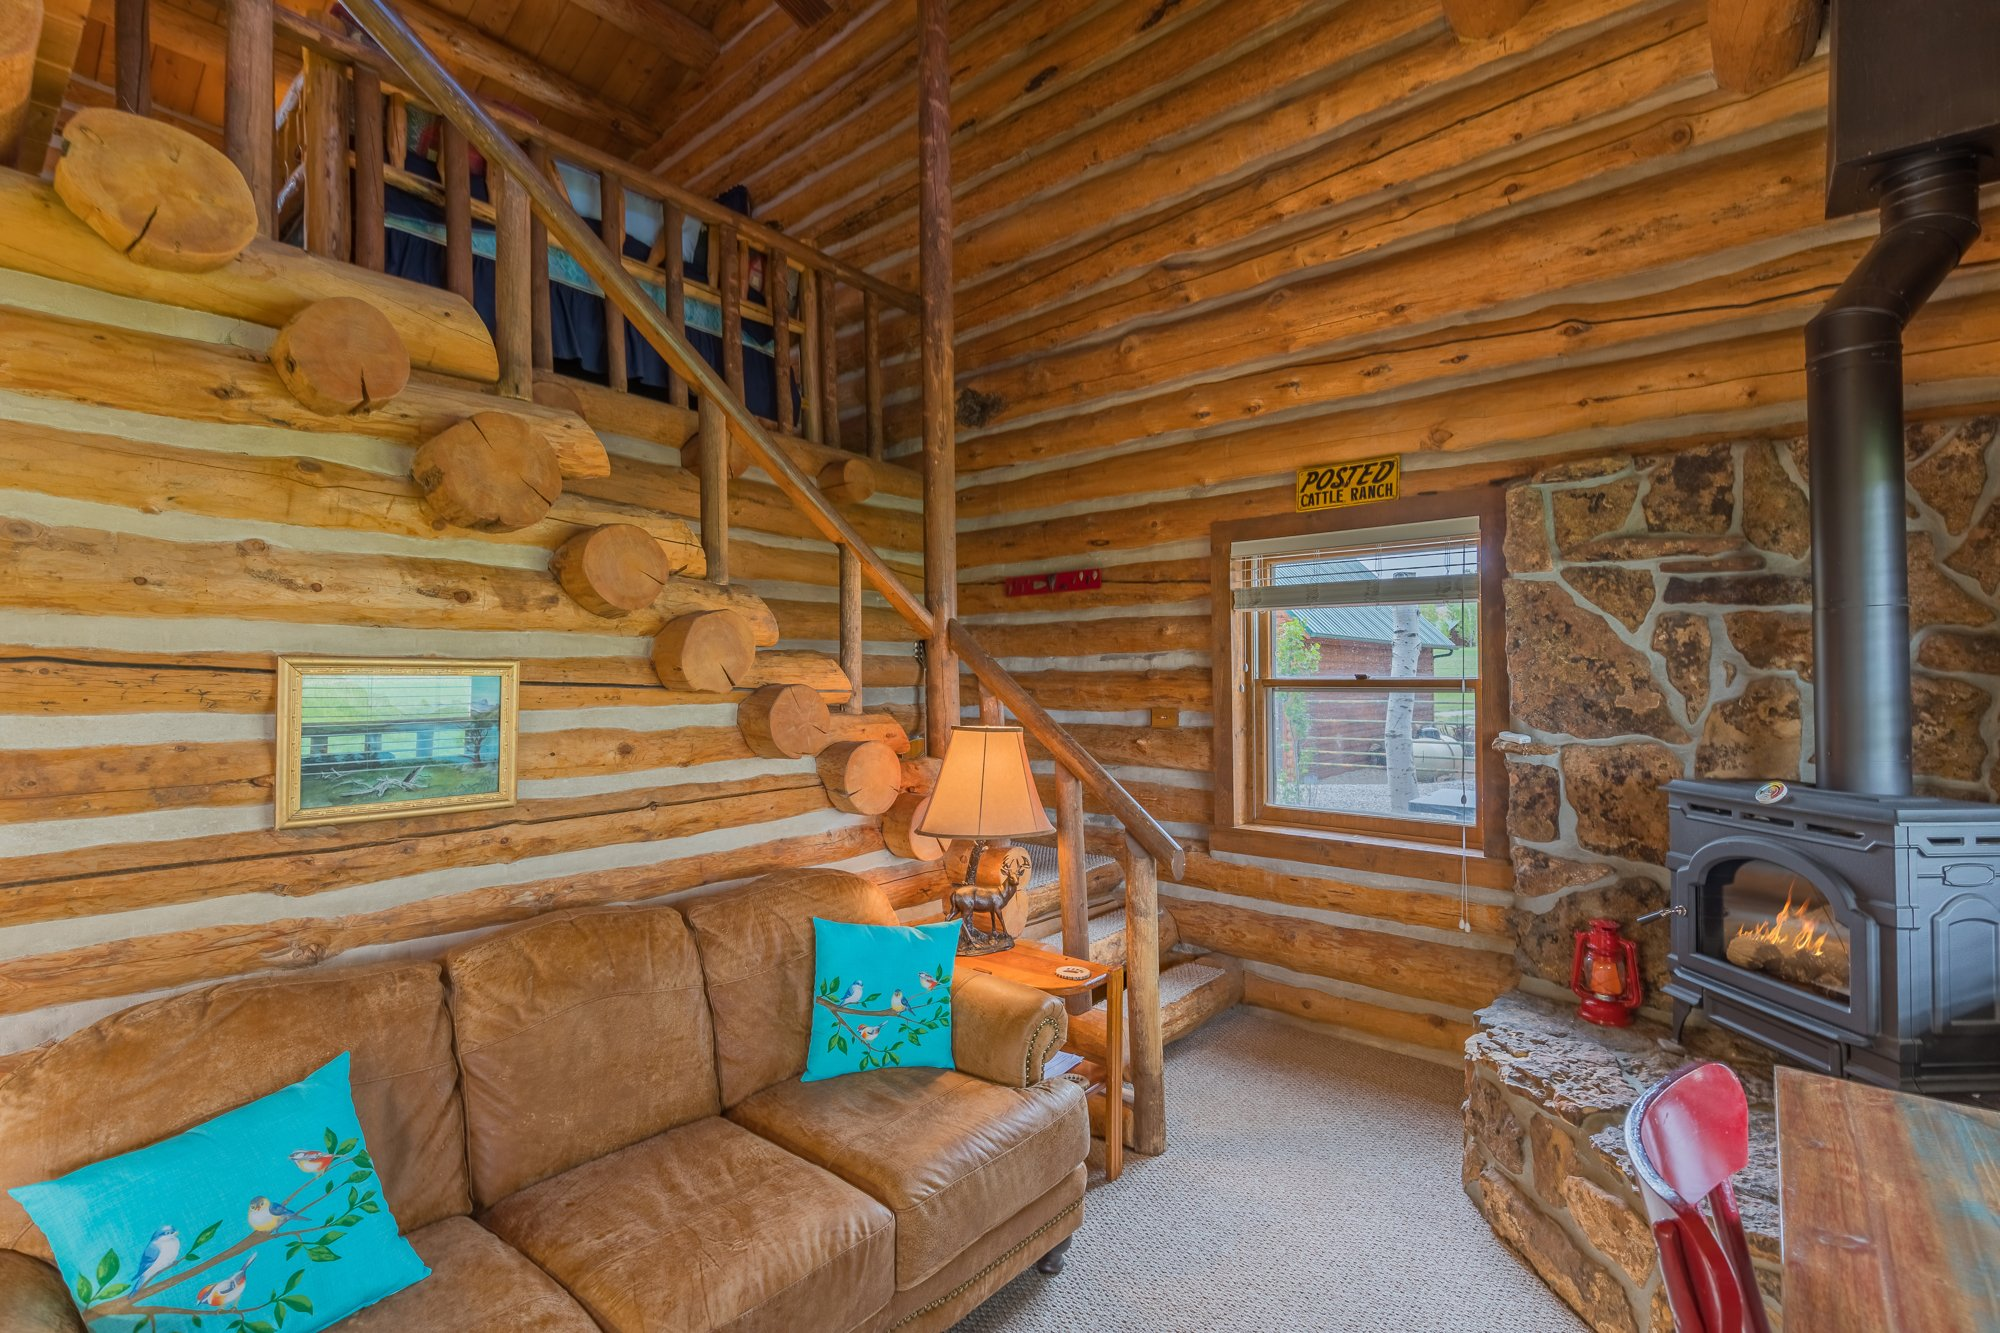 Living Room with Upstairs Access - 21770 Uncompahgre Rd Montrose, CO 81403 - Atha Team Country Real Estate